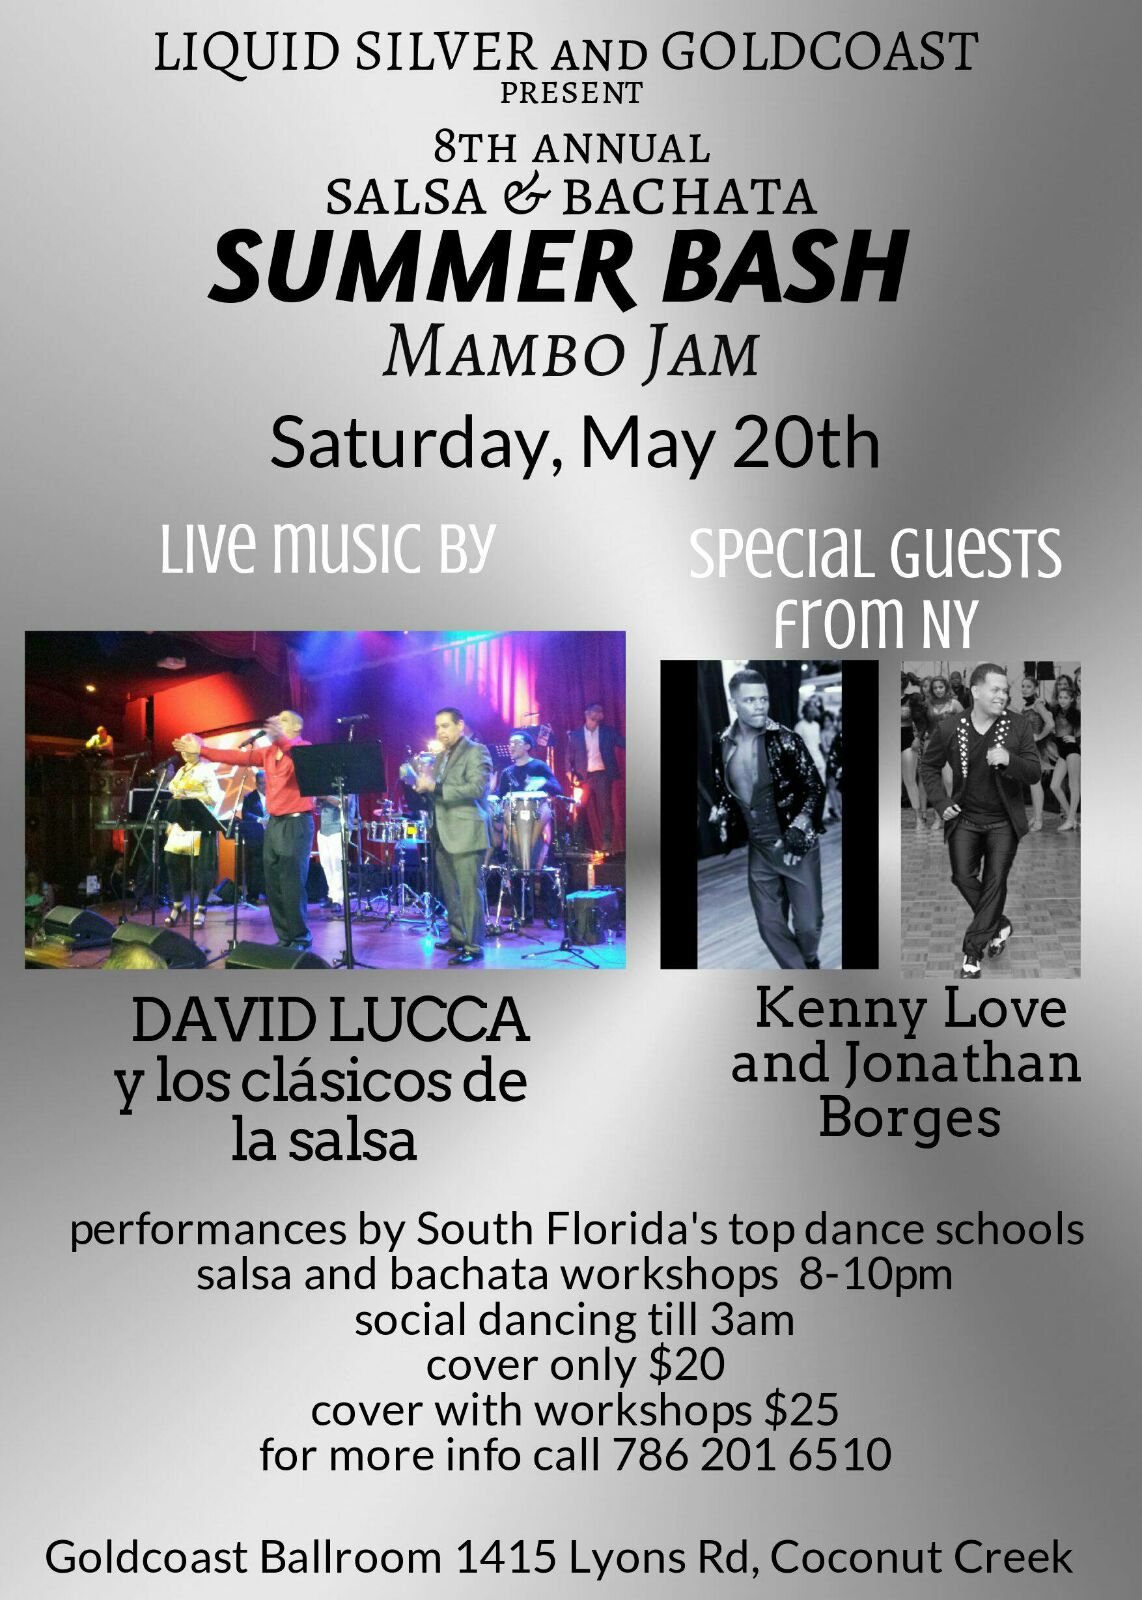 Salsa & Bachata Summer Bash & Mambo Jam! -  Saturday, May 20, 2017 - Presented By Liquid Silver & Goldcoast Ballroom